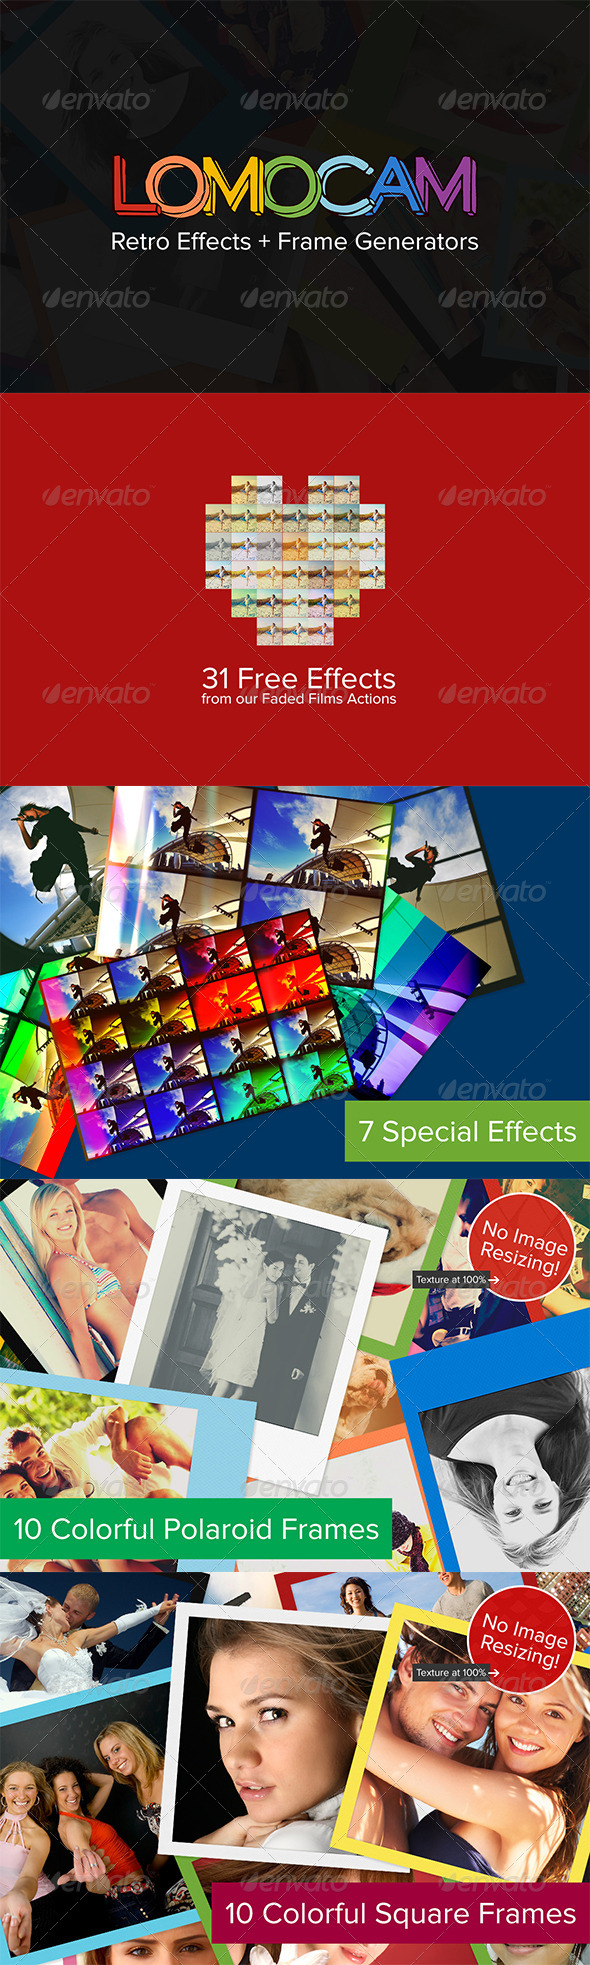 Lomocam - Retro Effects & Frames - Photo Effects Actions